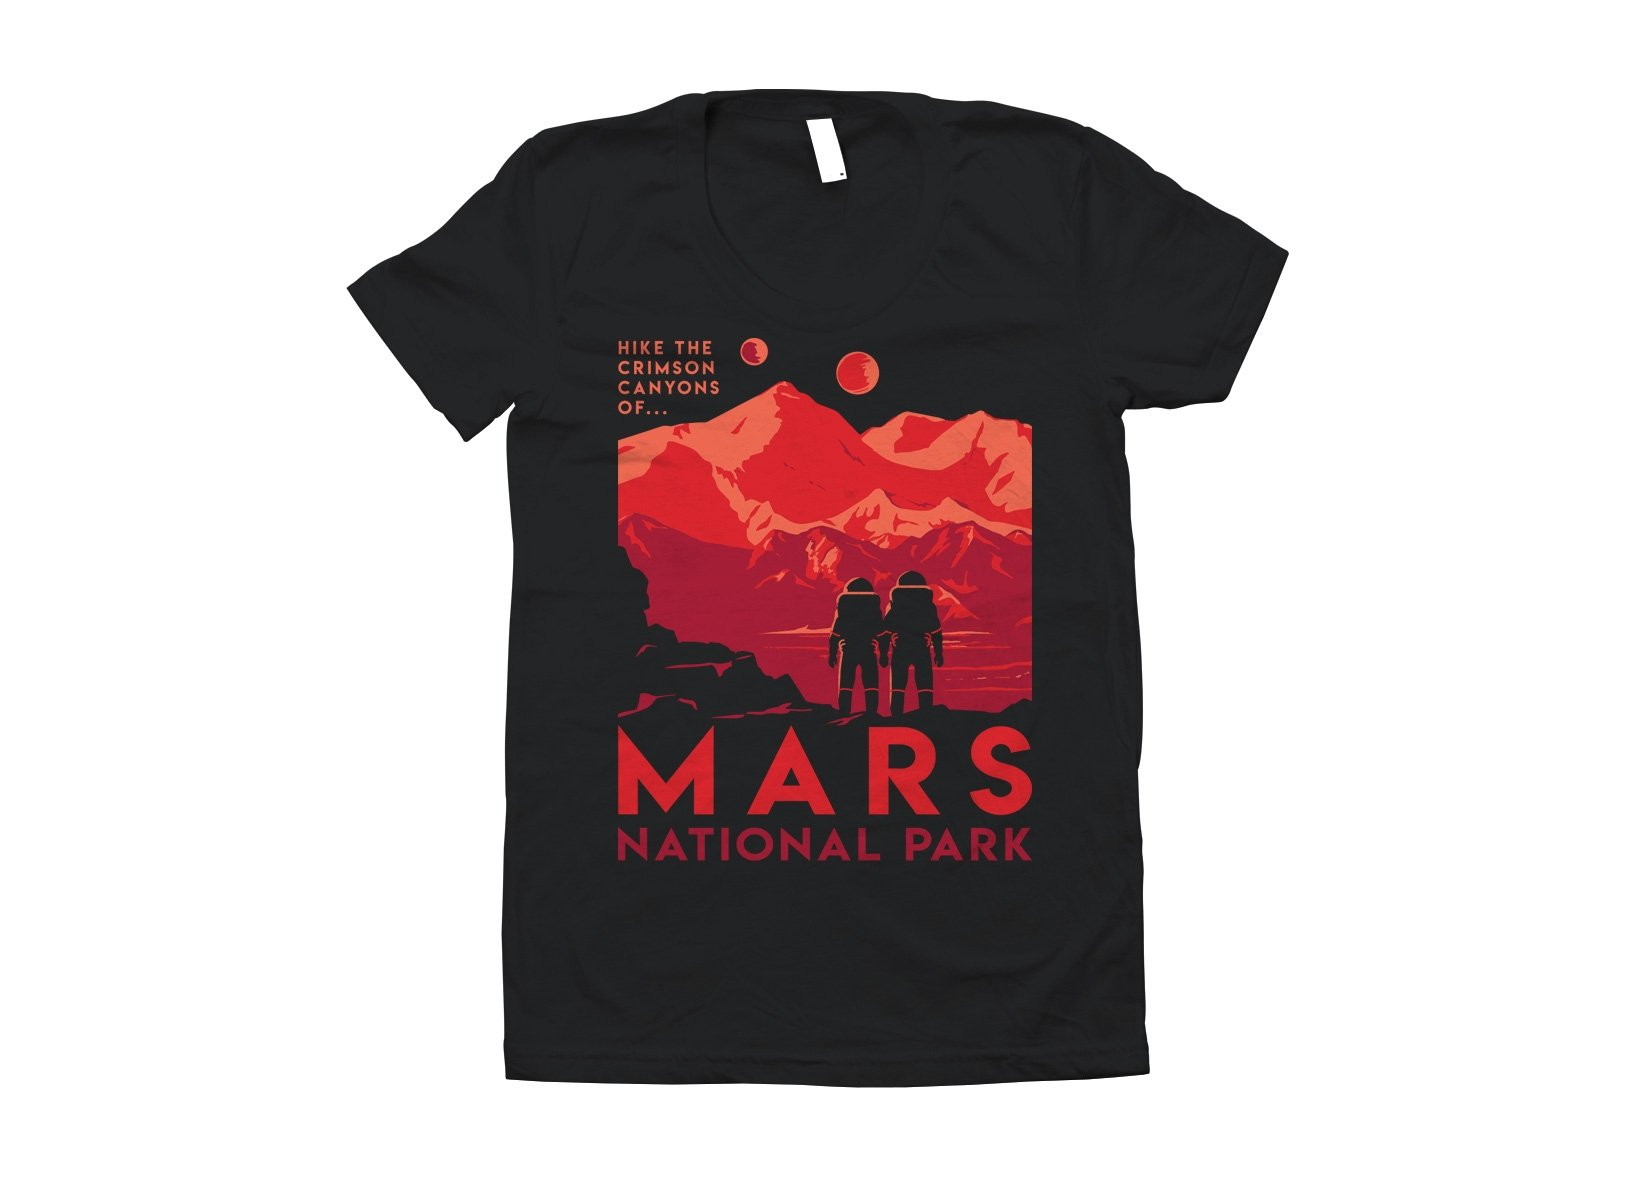 Mars National Park on Juniors T-Shirt